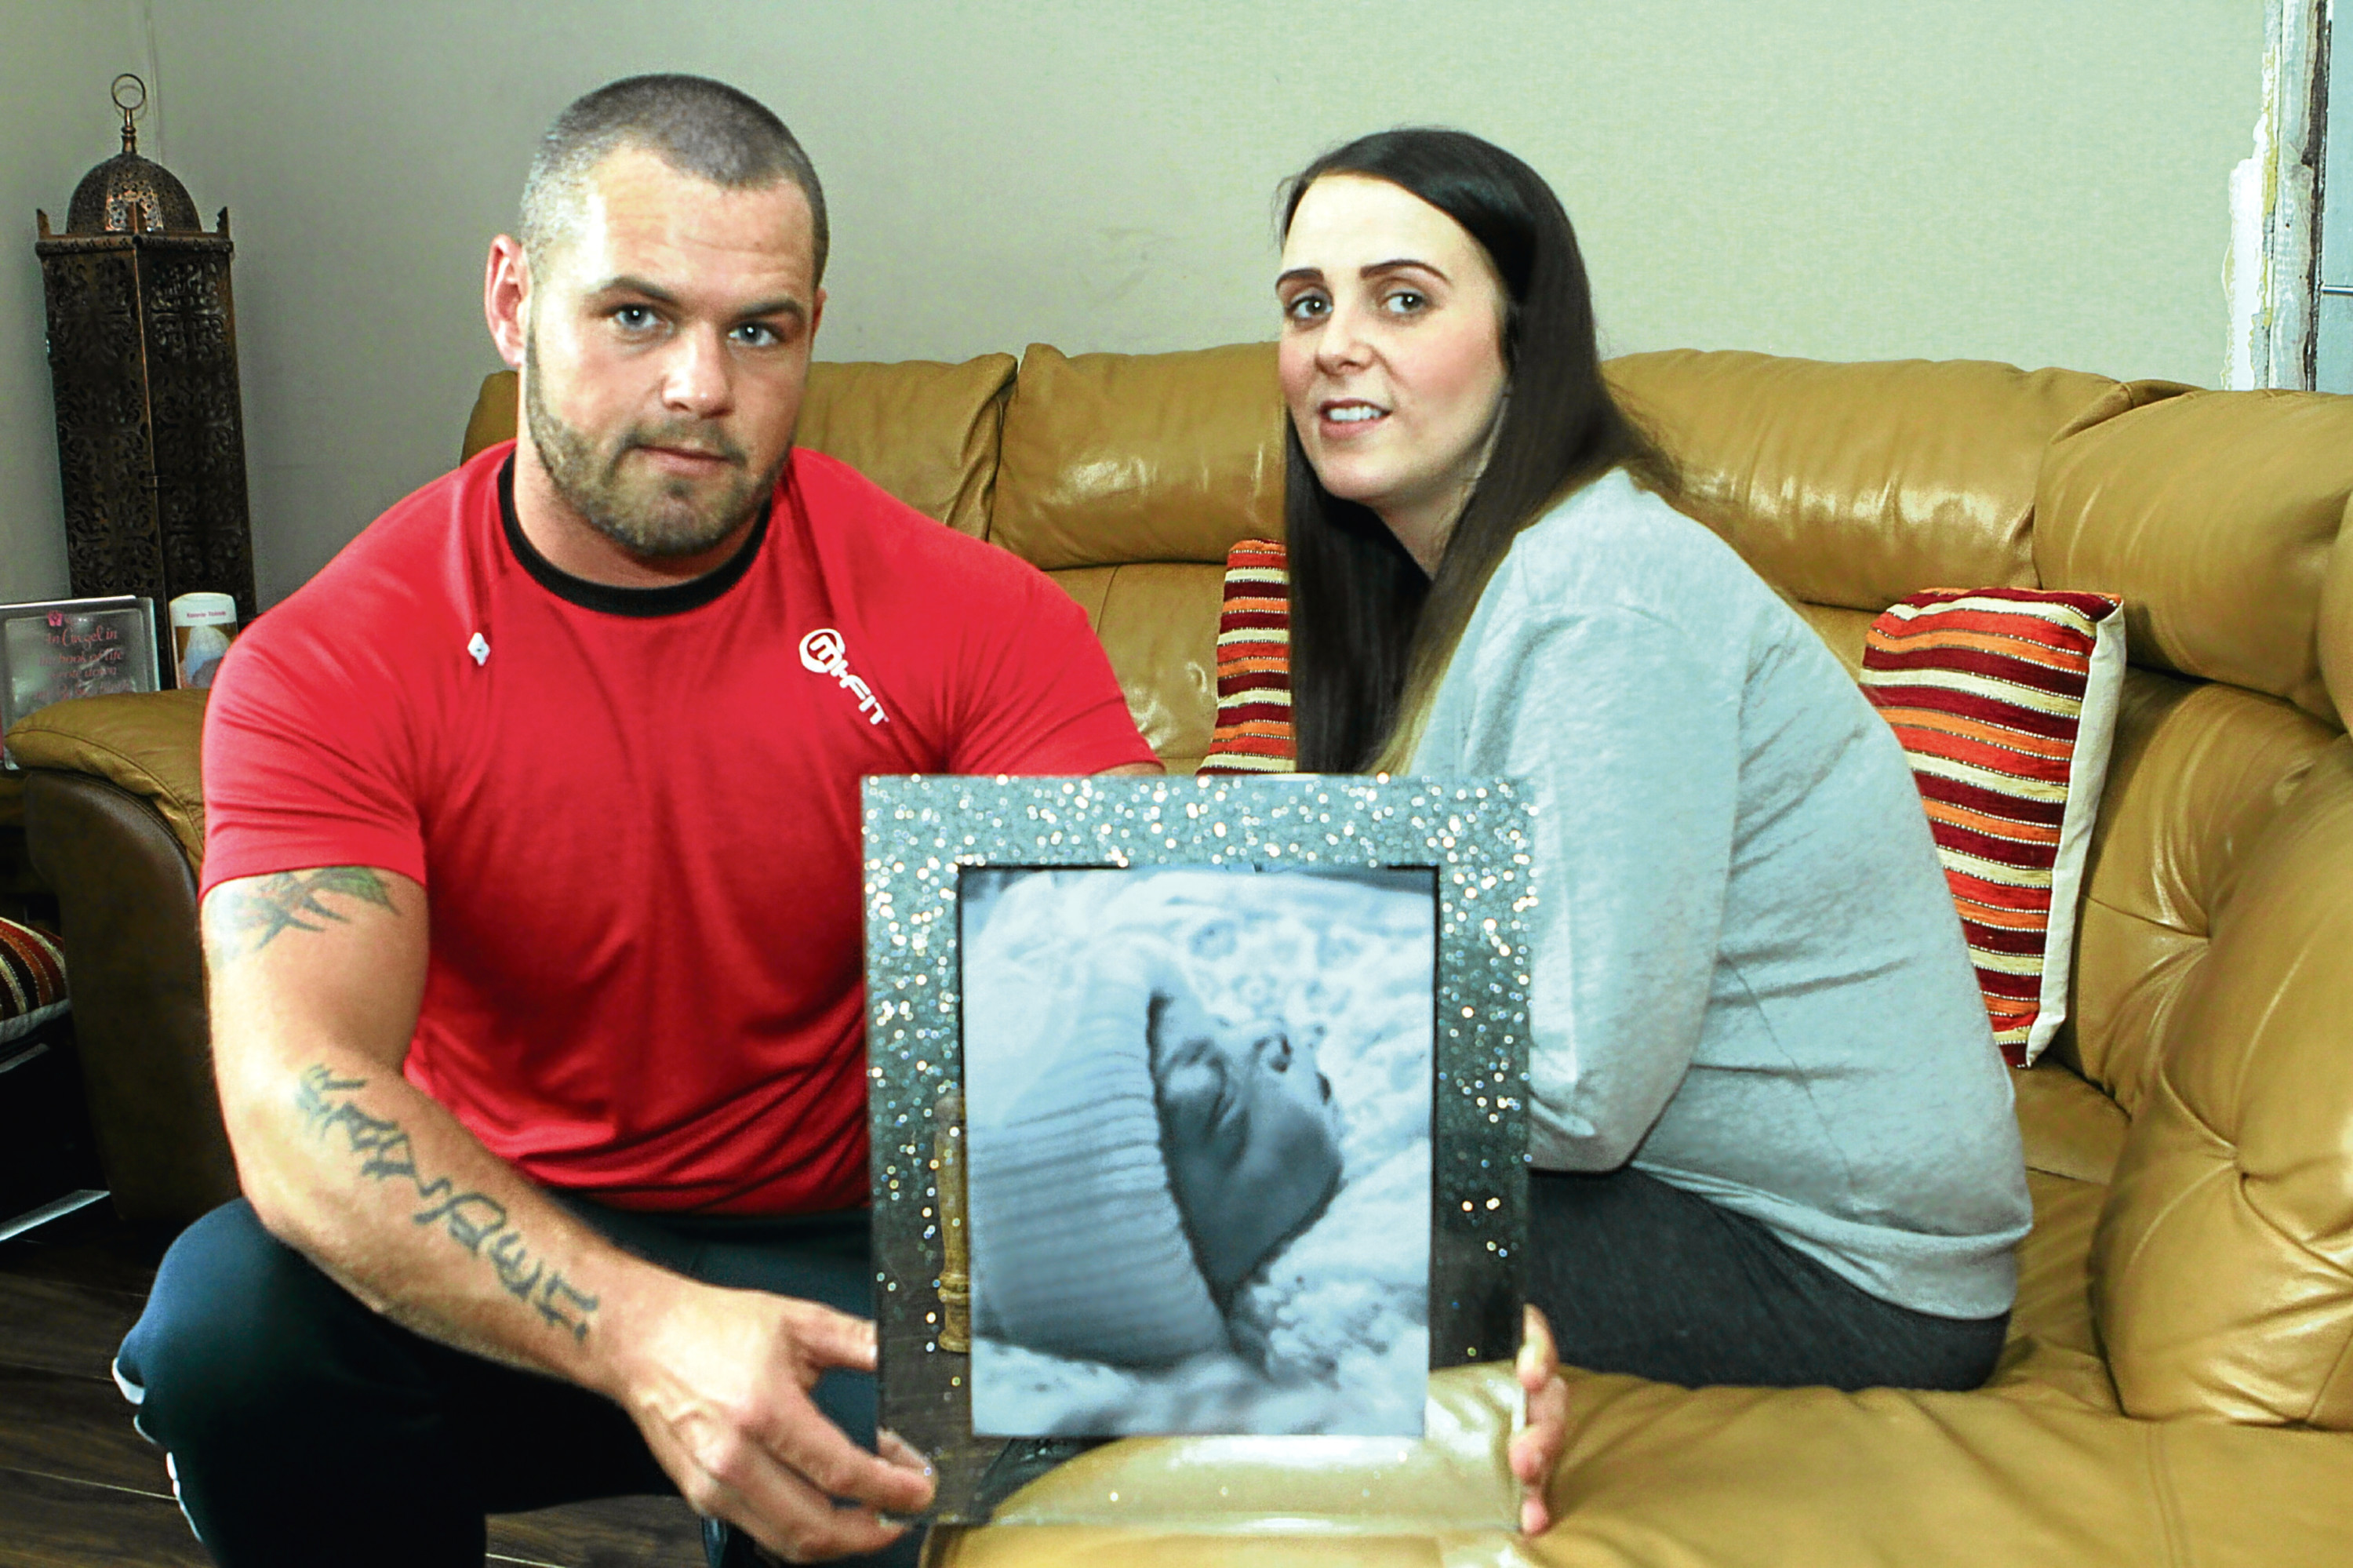 Brian Tolmie and Robyn Stevens with a photograph of their daughter Konnie, who was stillborn.